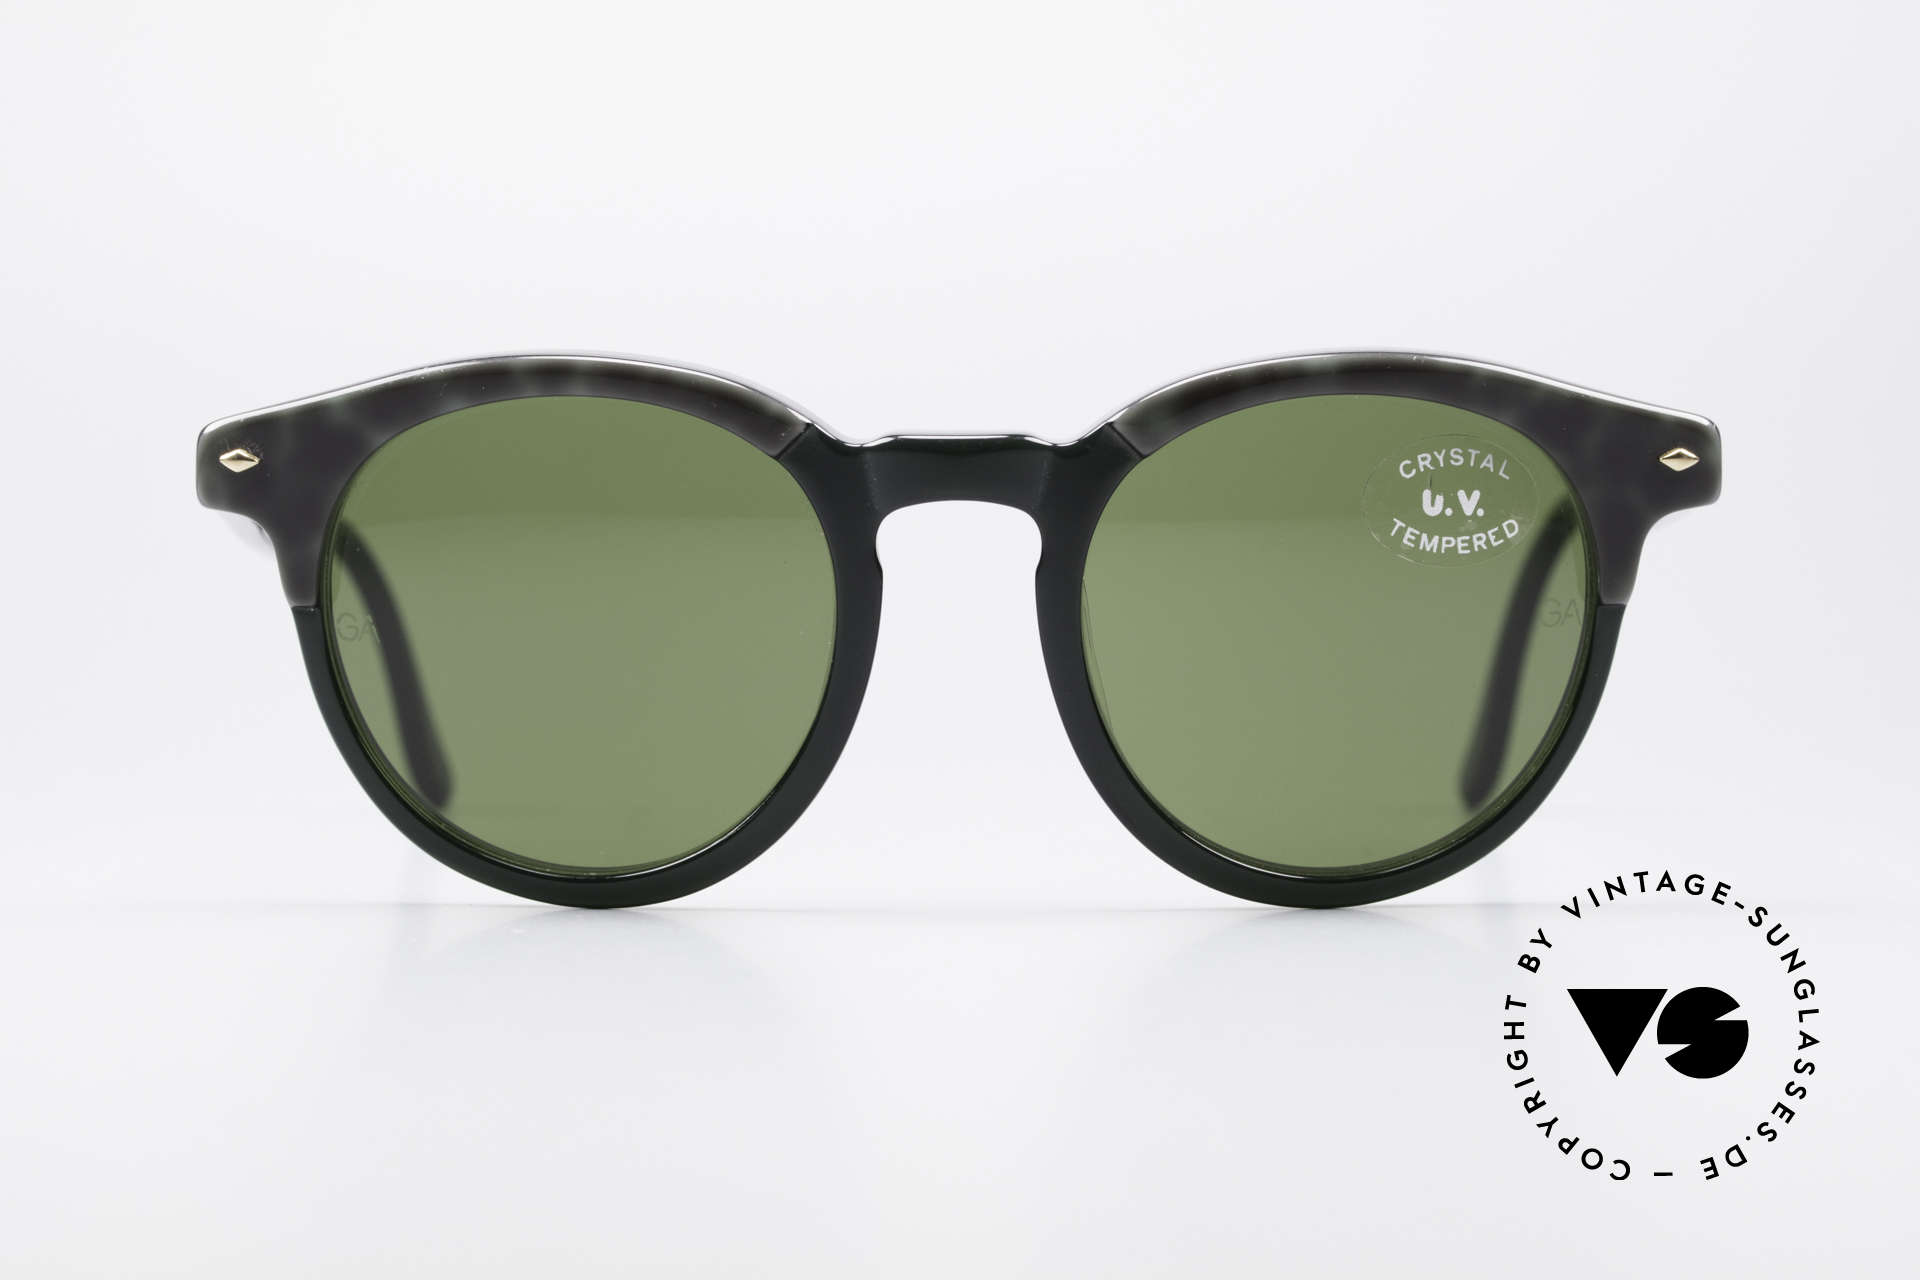 Giorgio Armani 901 Johnny Depp Sunglasses, a true vintage 'sunglass classic' in coloring and design, Made for Men